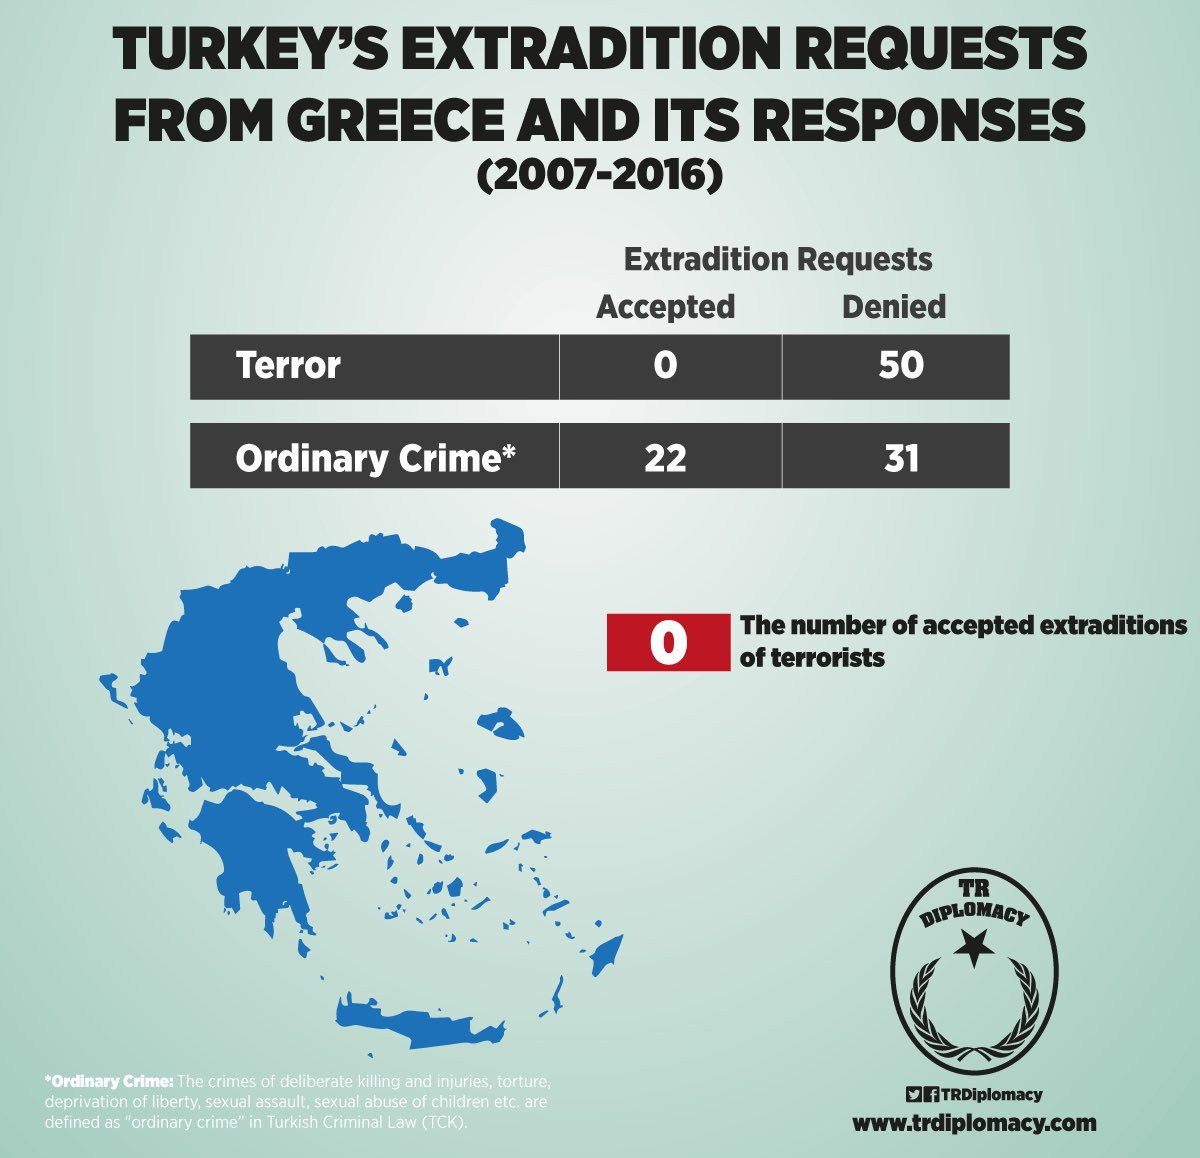 Turkey's requests for the extradition of terrorists and criminals, and response from Europe, especially Greece.